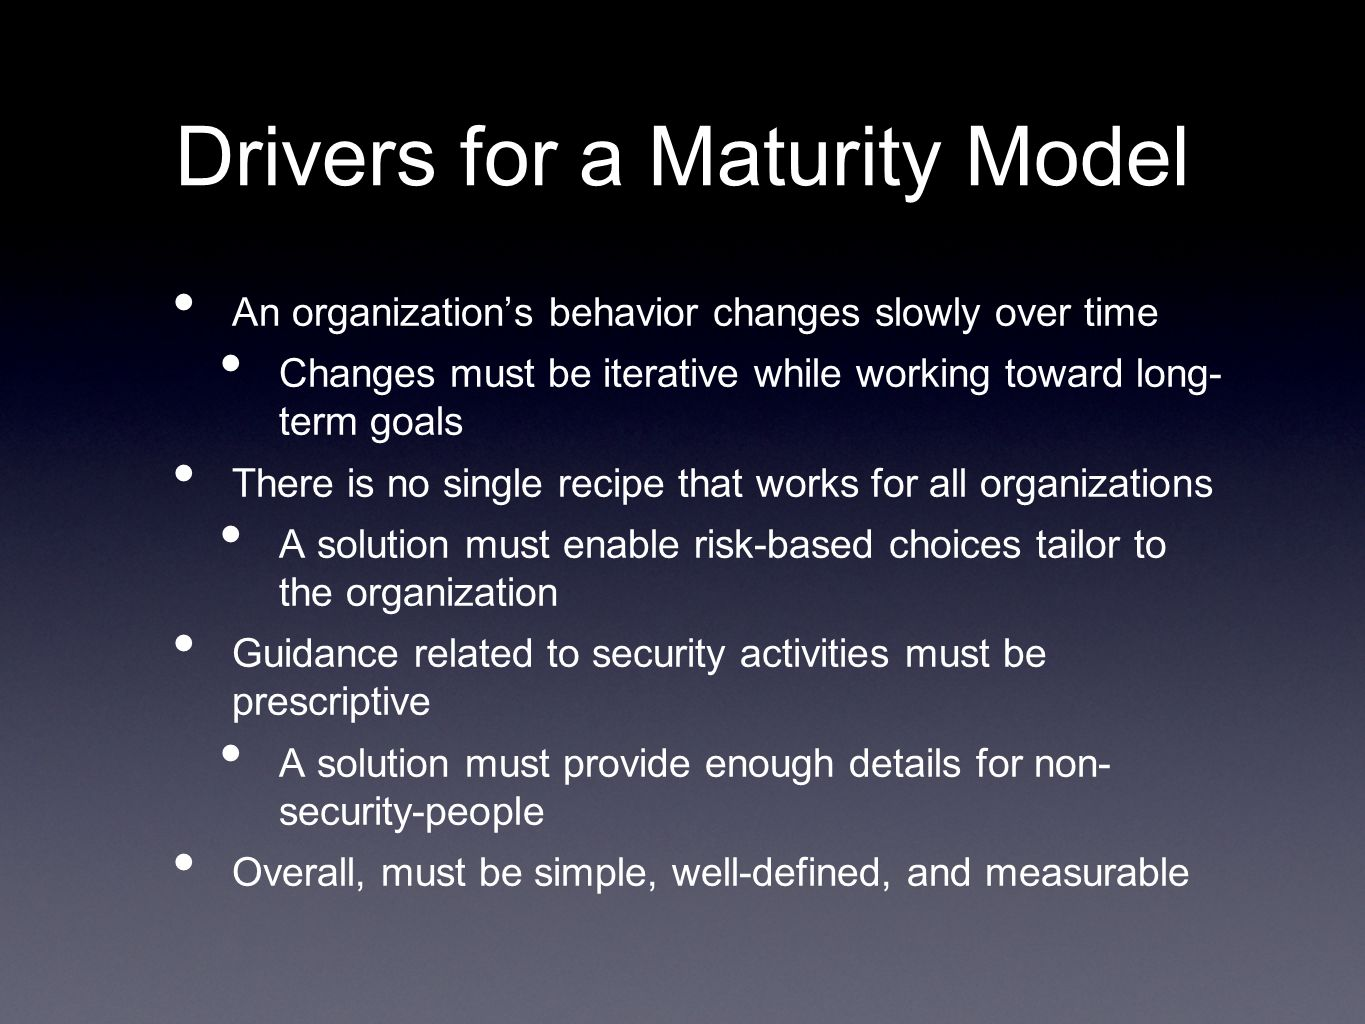 Drivers for a Maturity Model